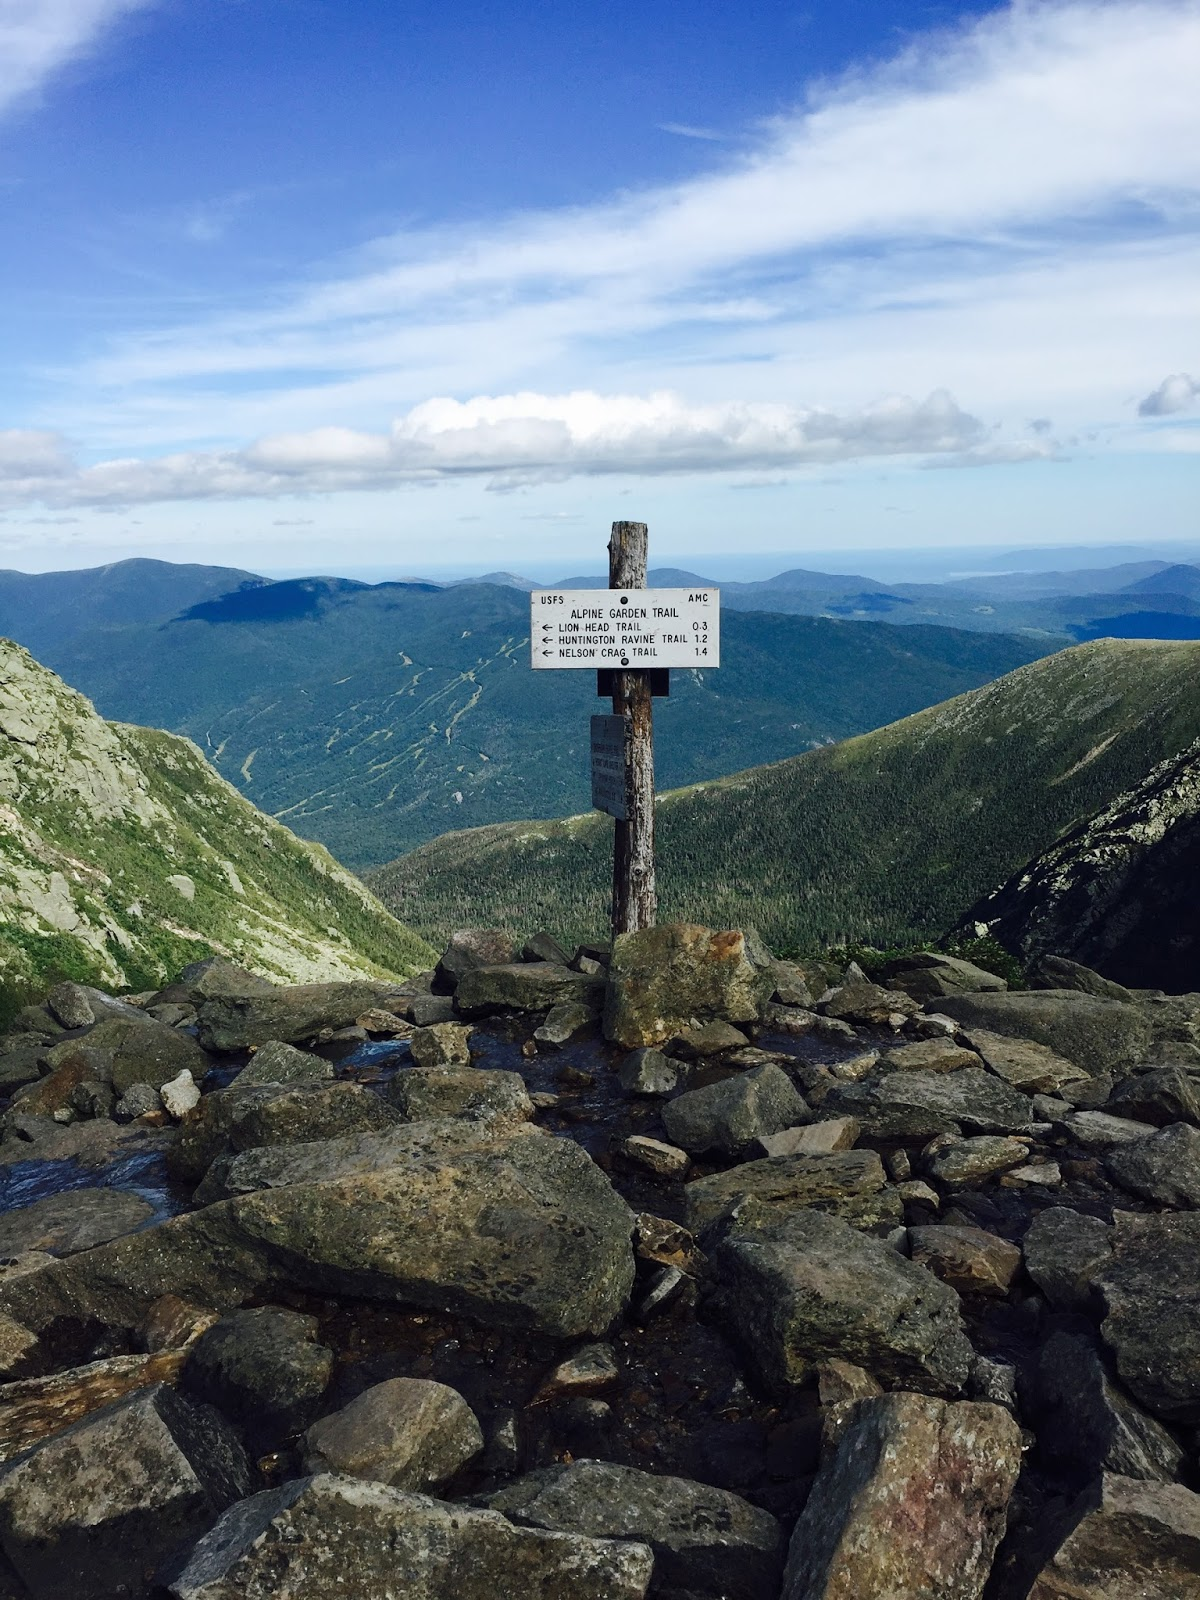 tuckerman's ravine trail